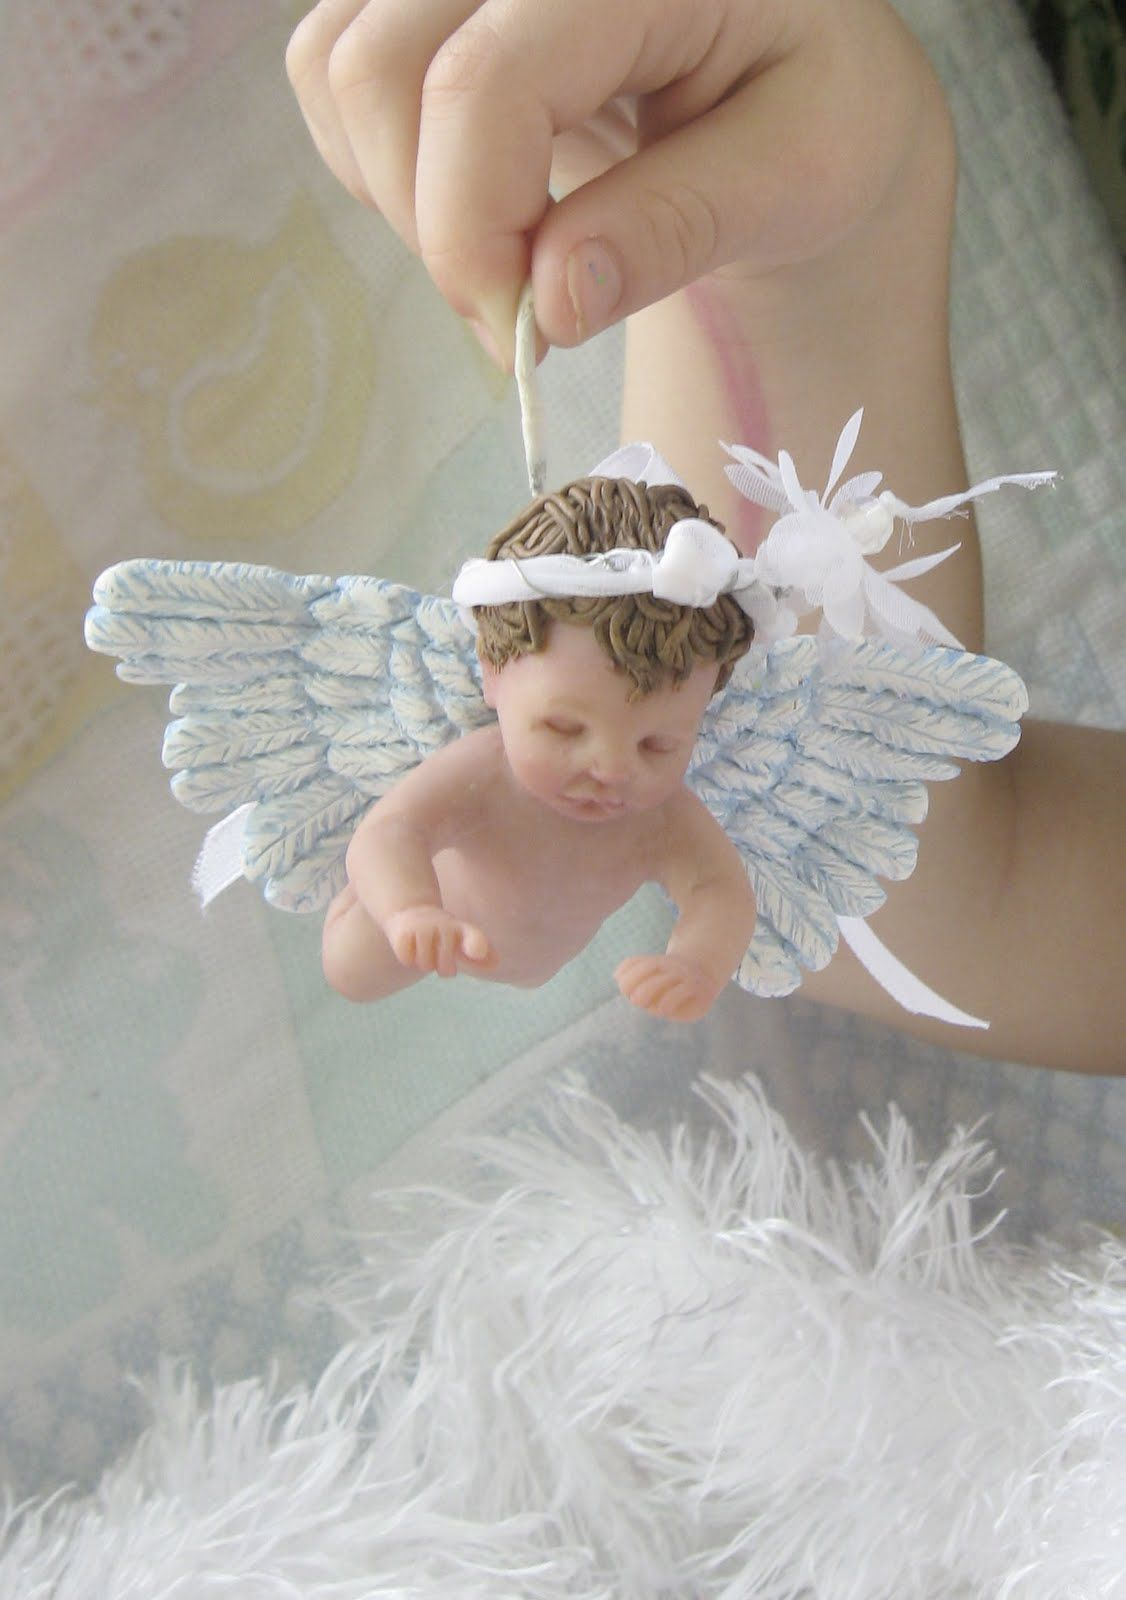 Images of baby angels with wings-6139